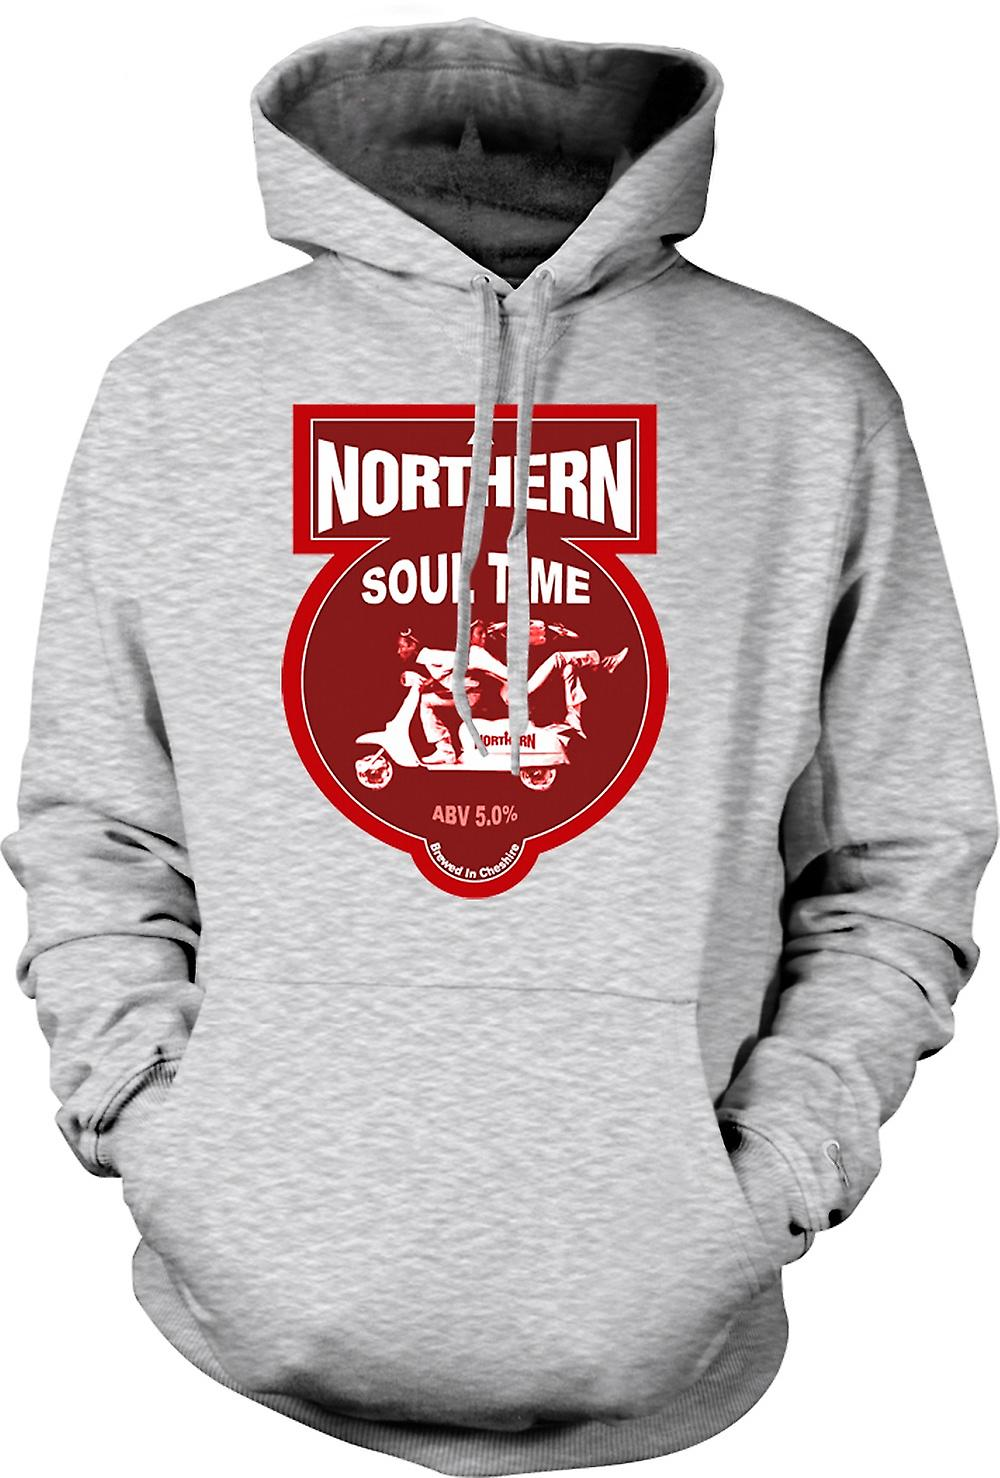 Mens Hoodie - Northern Soul Scooter Vespa